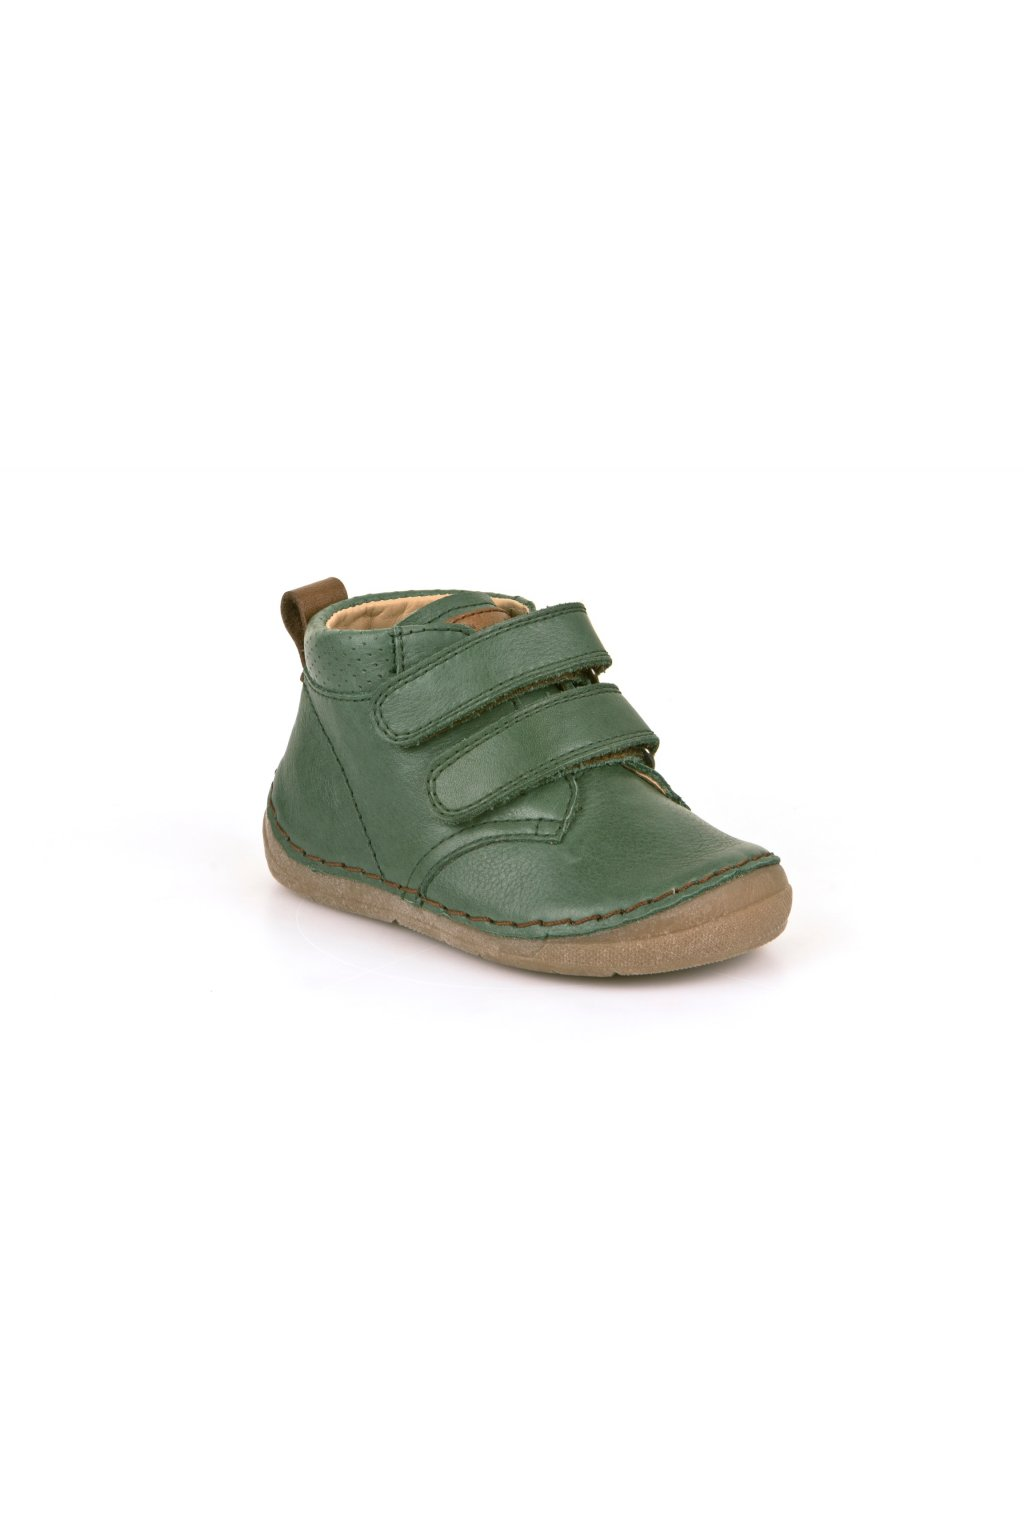 Froddo Shoes Dark Green